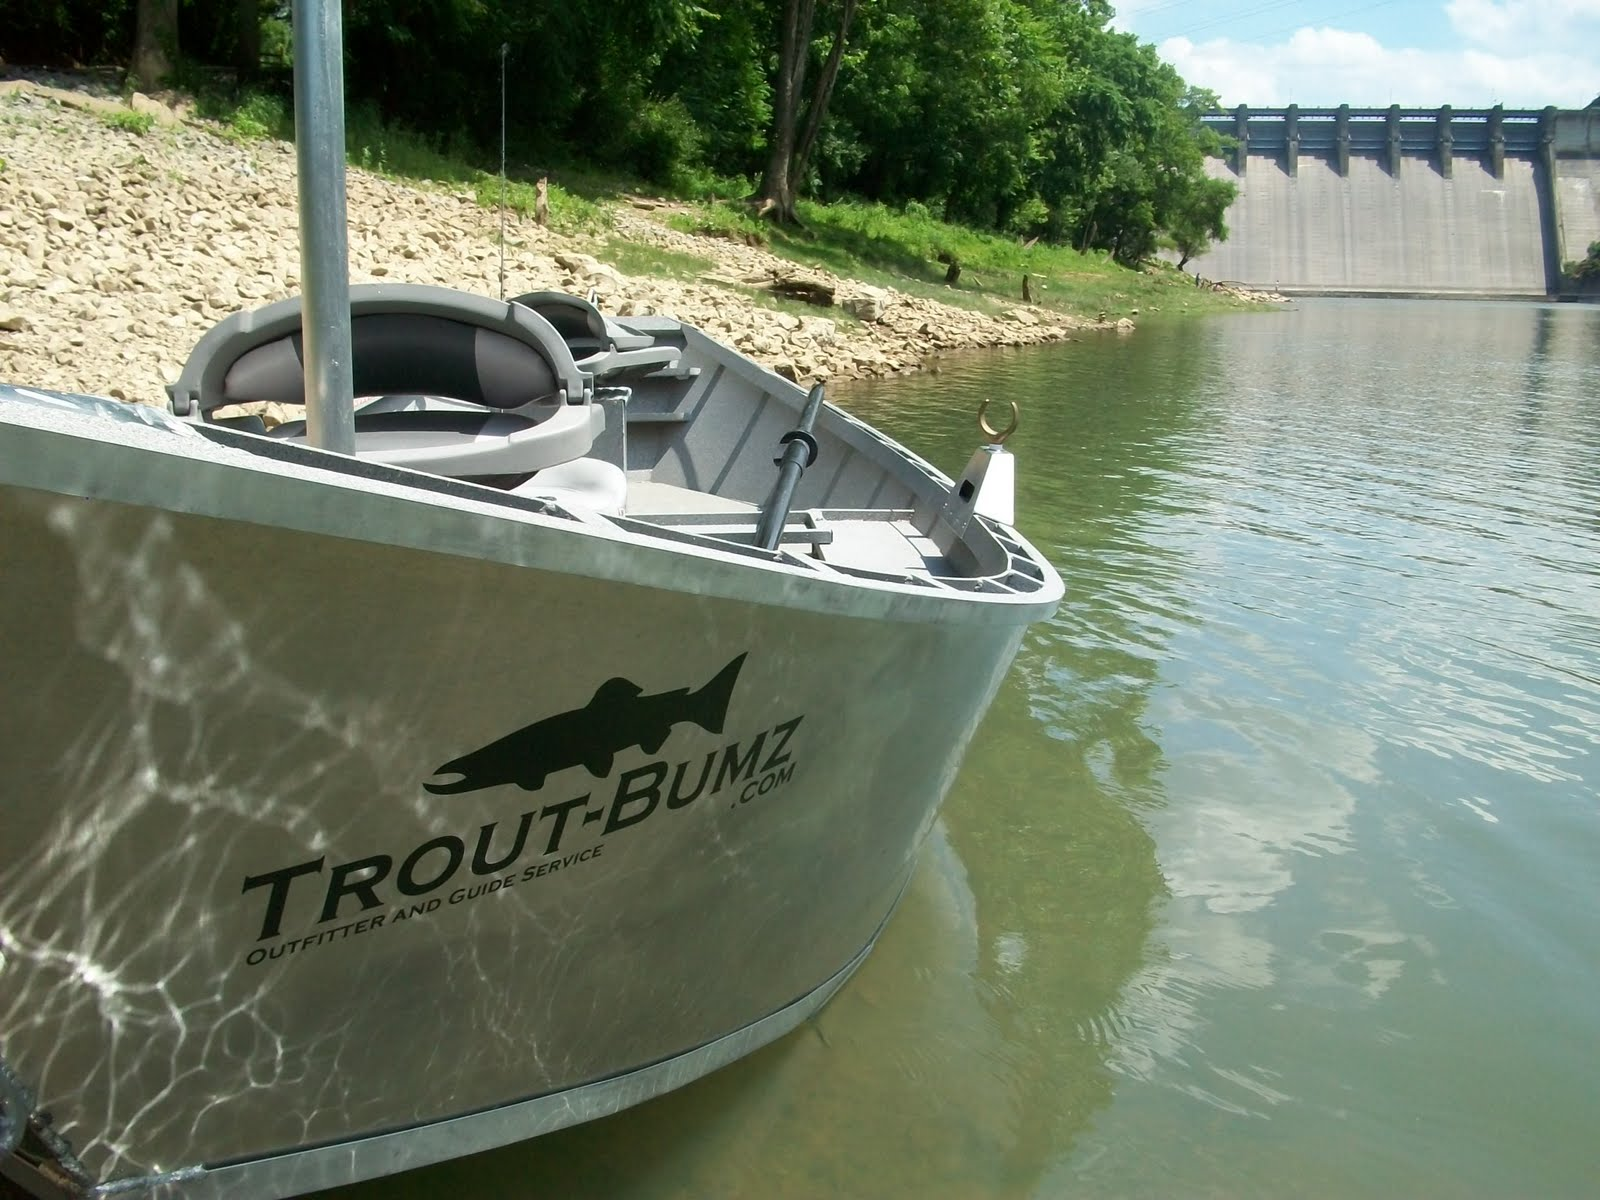 Trout bumz outfitter and guide service cumberland river for Cumberland river fishing